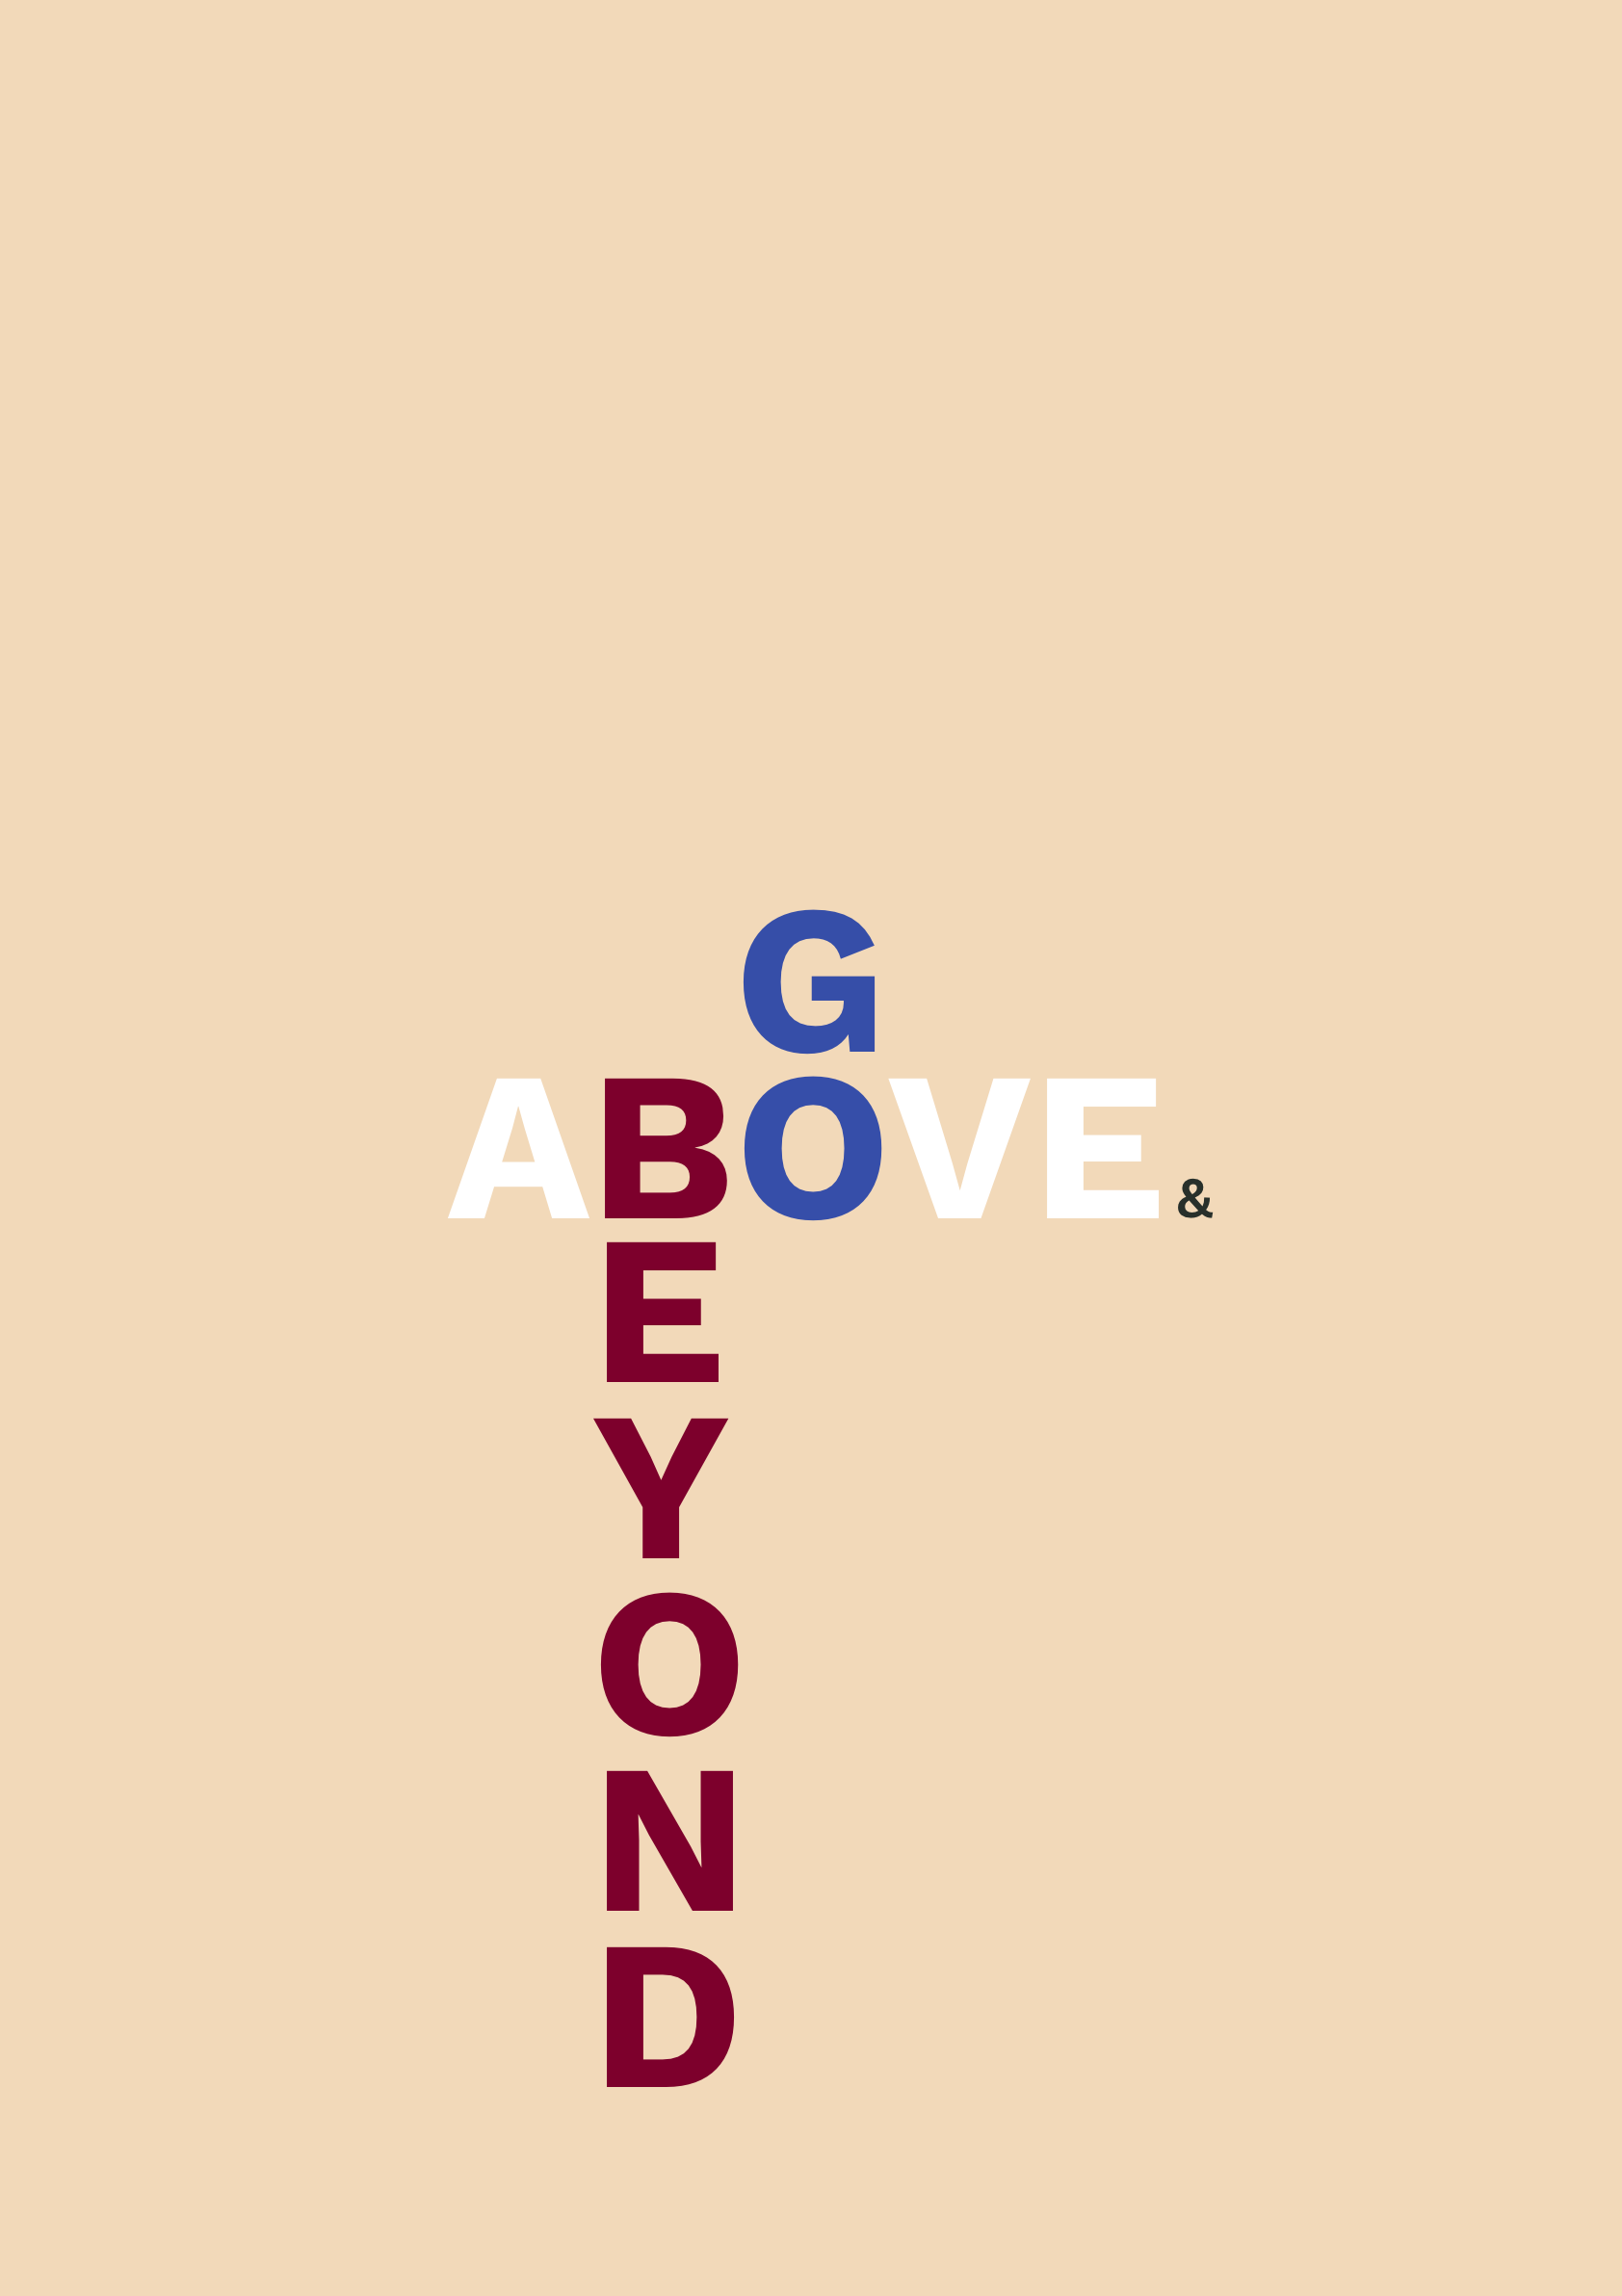 GO-ABOVE&BEYOND.png